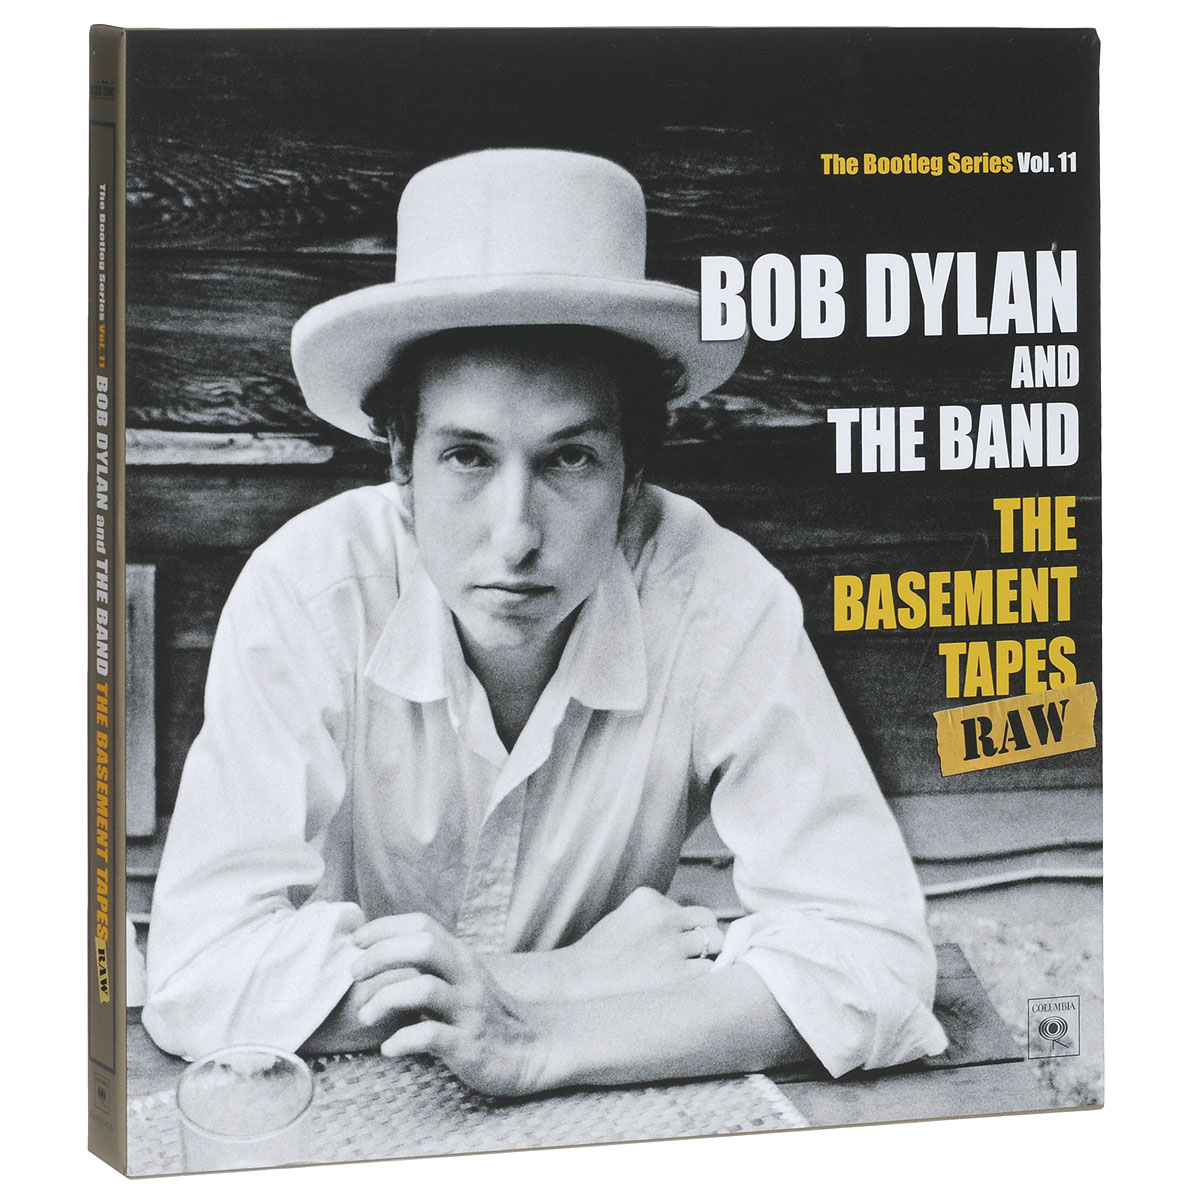 Bob Dylan And The Band Bob Dylan and The Band. The Bootleg Series Vol. 11: The Basement Tapes Complete. Special Deluxe (2 CD + 3 LP) band sony